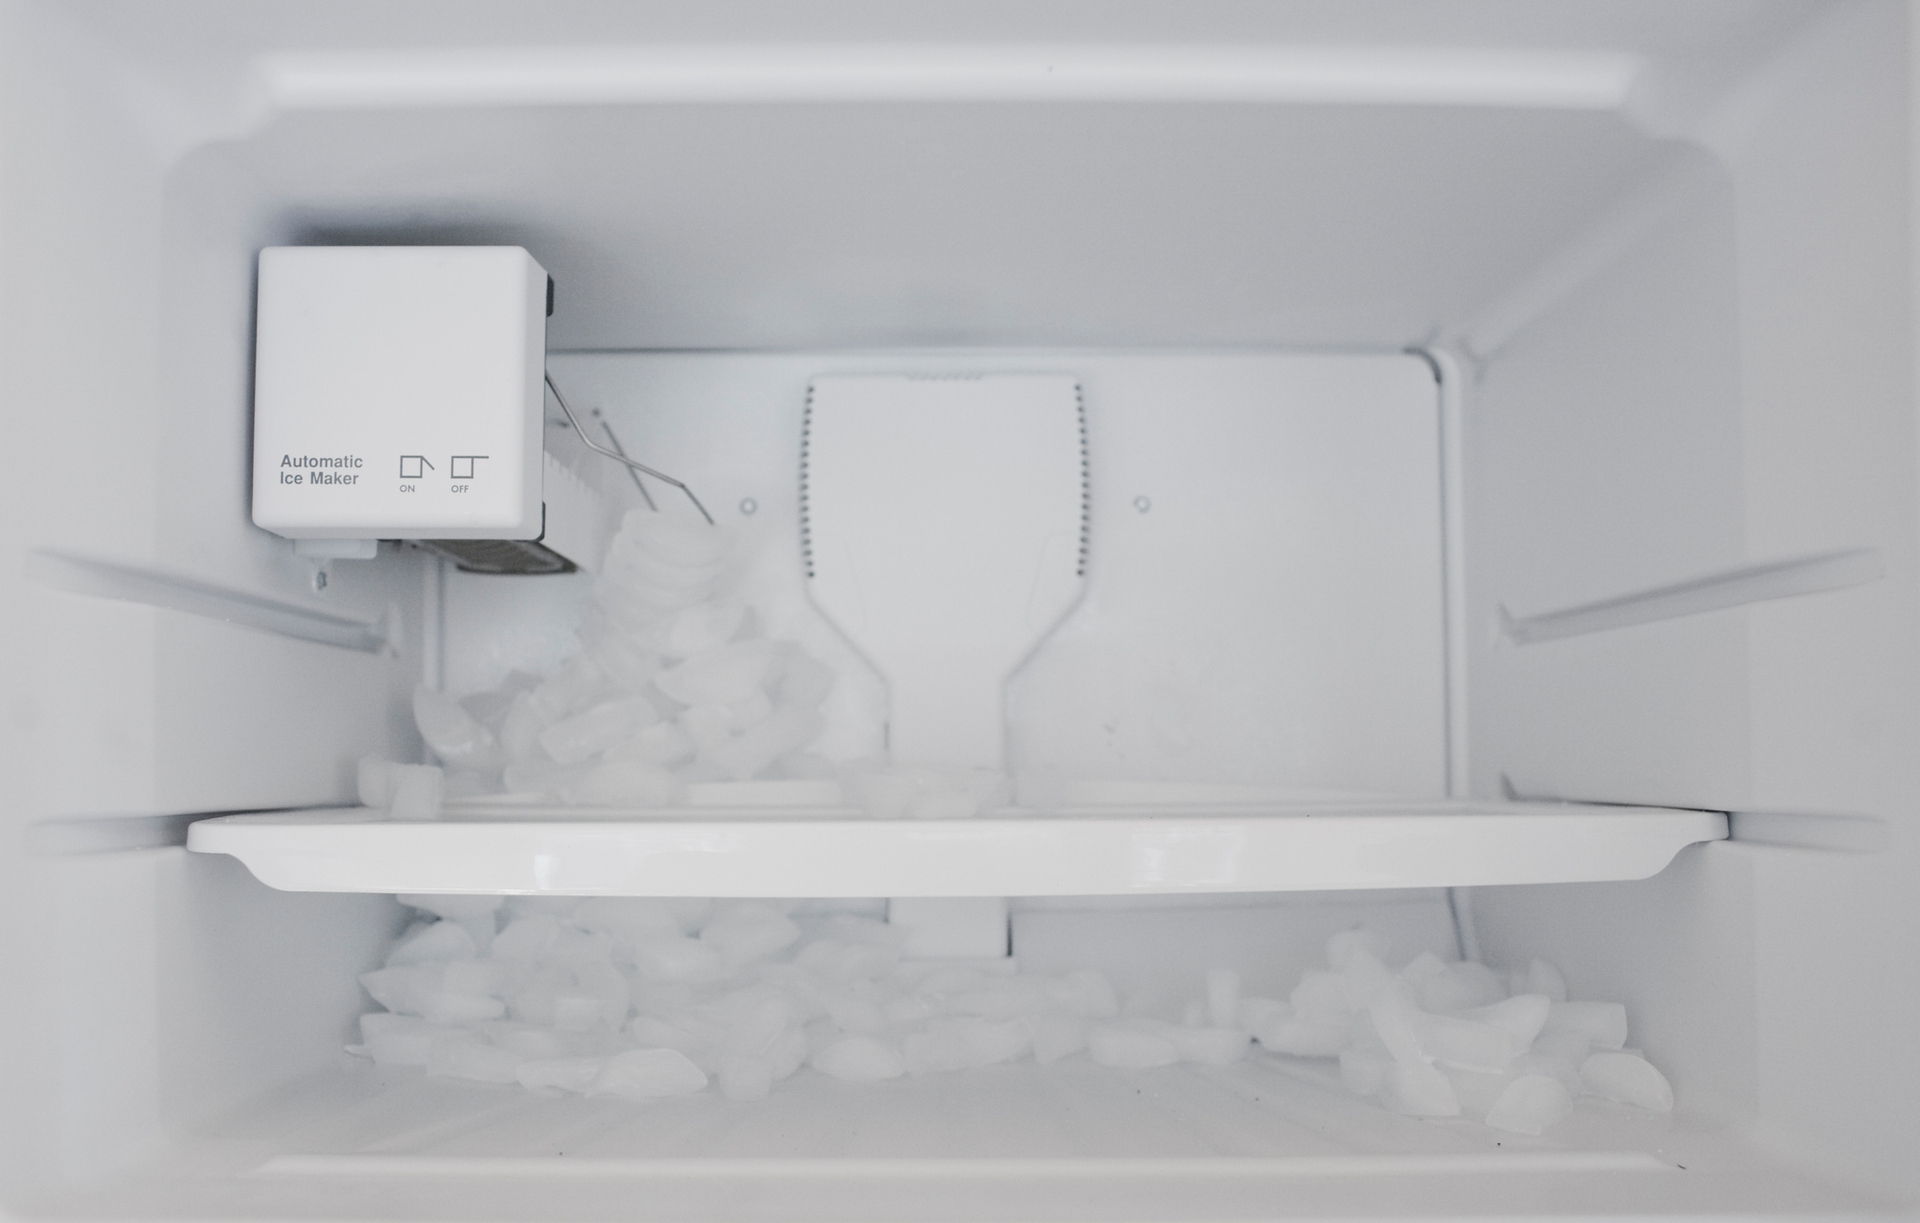 Woman's odd question about freezer sparks fierce debate